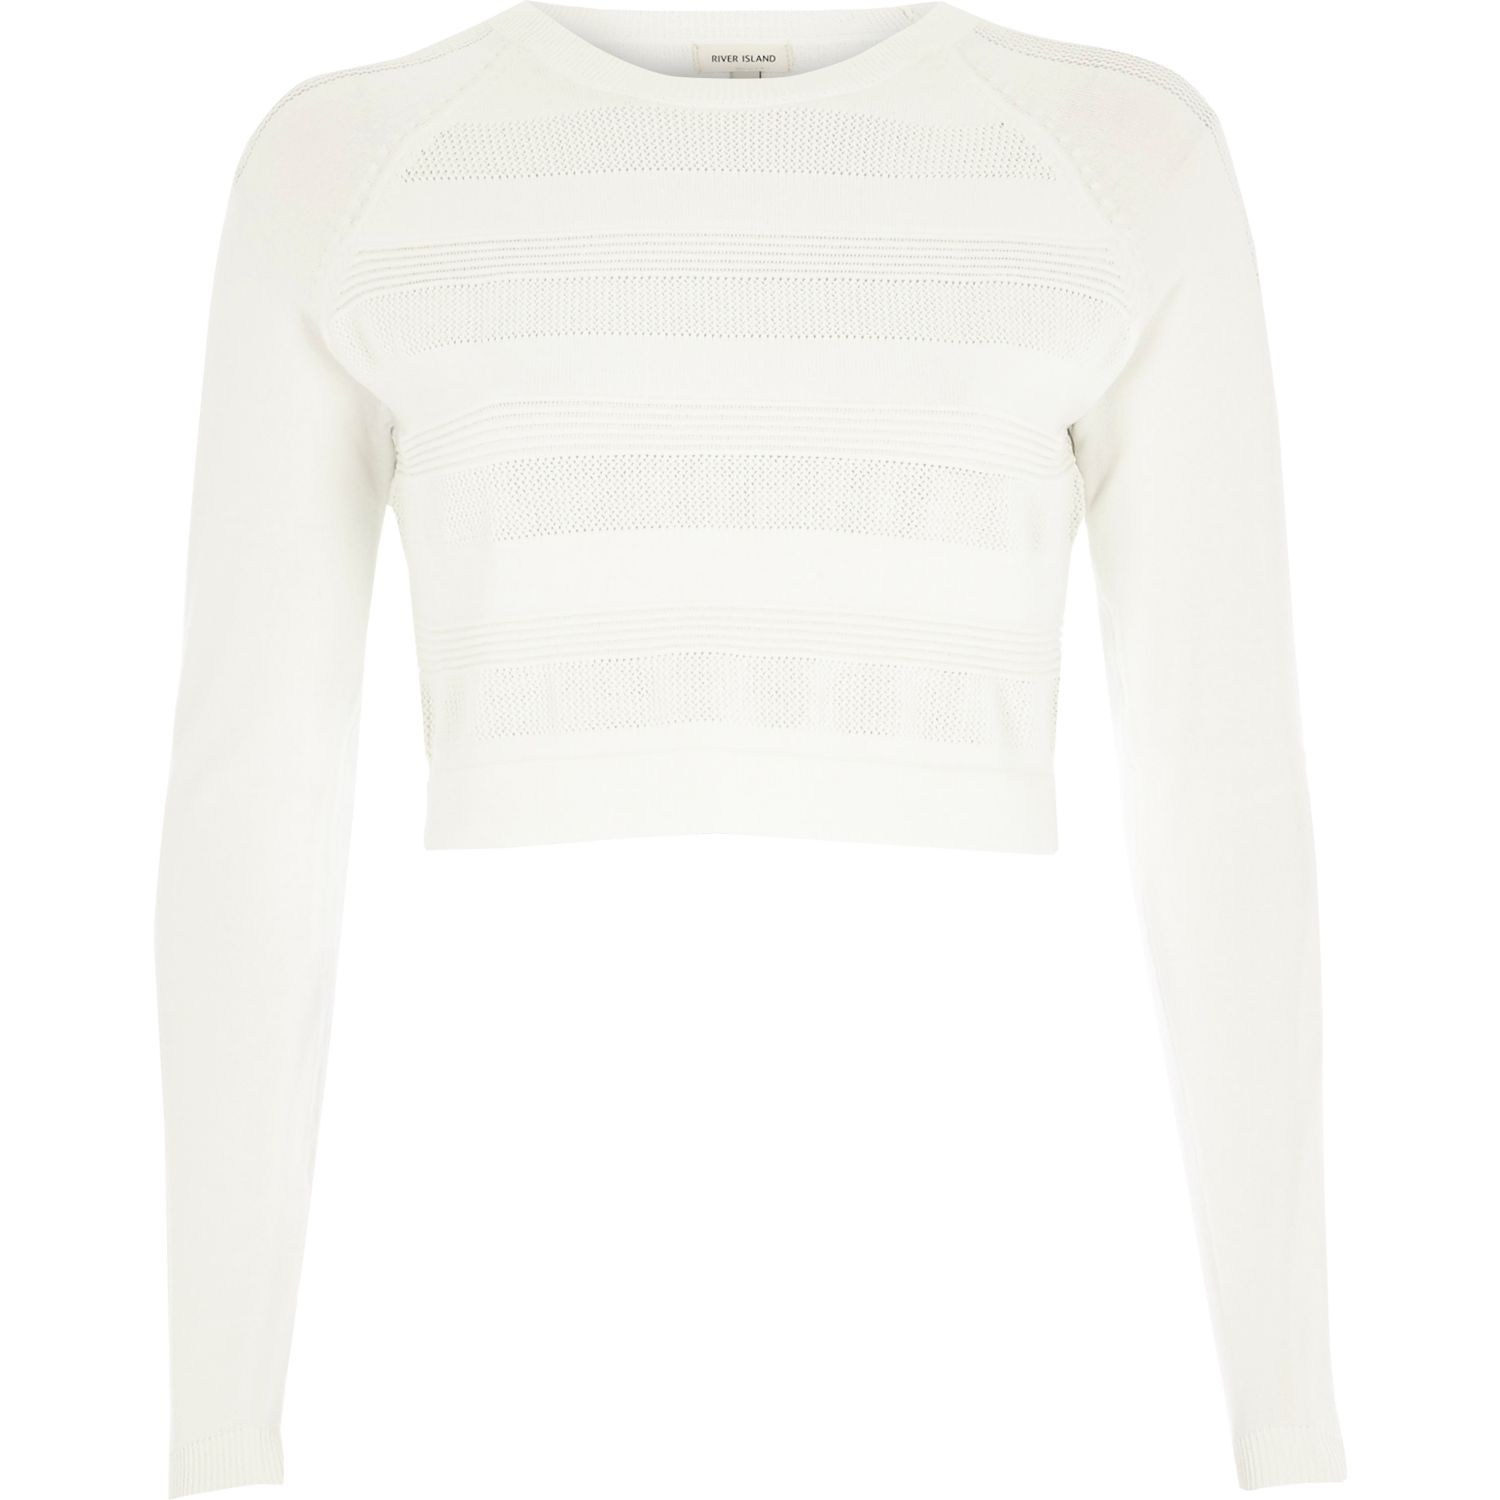 70ee9c014e9 River Island White Ripple Mesh Knitted Crop Top in White - Lyst